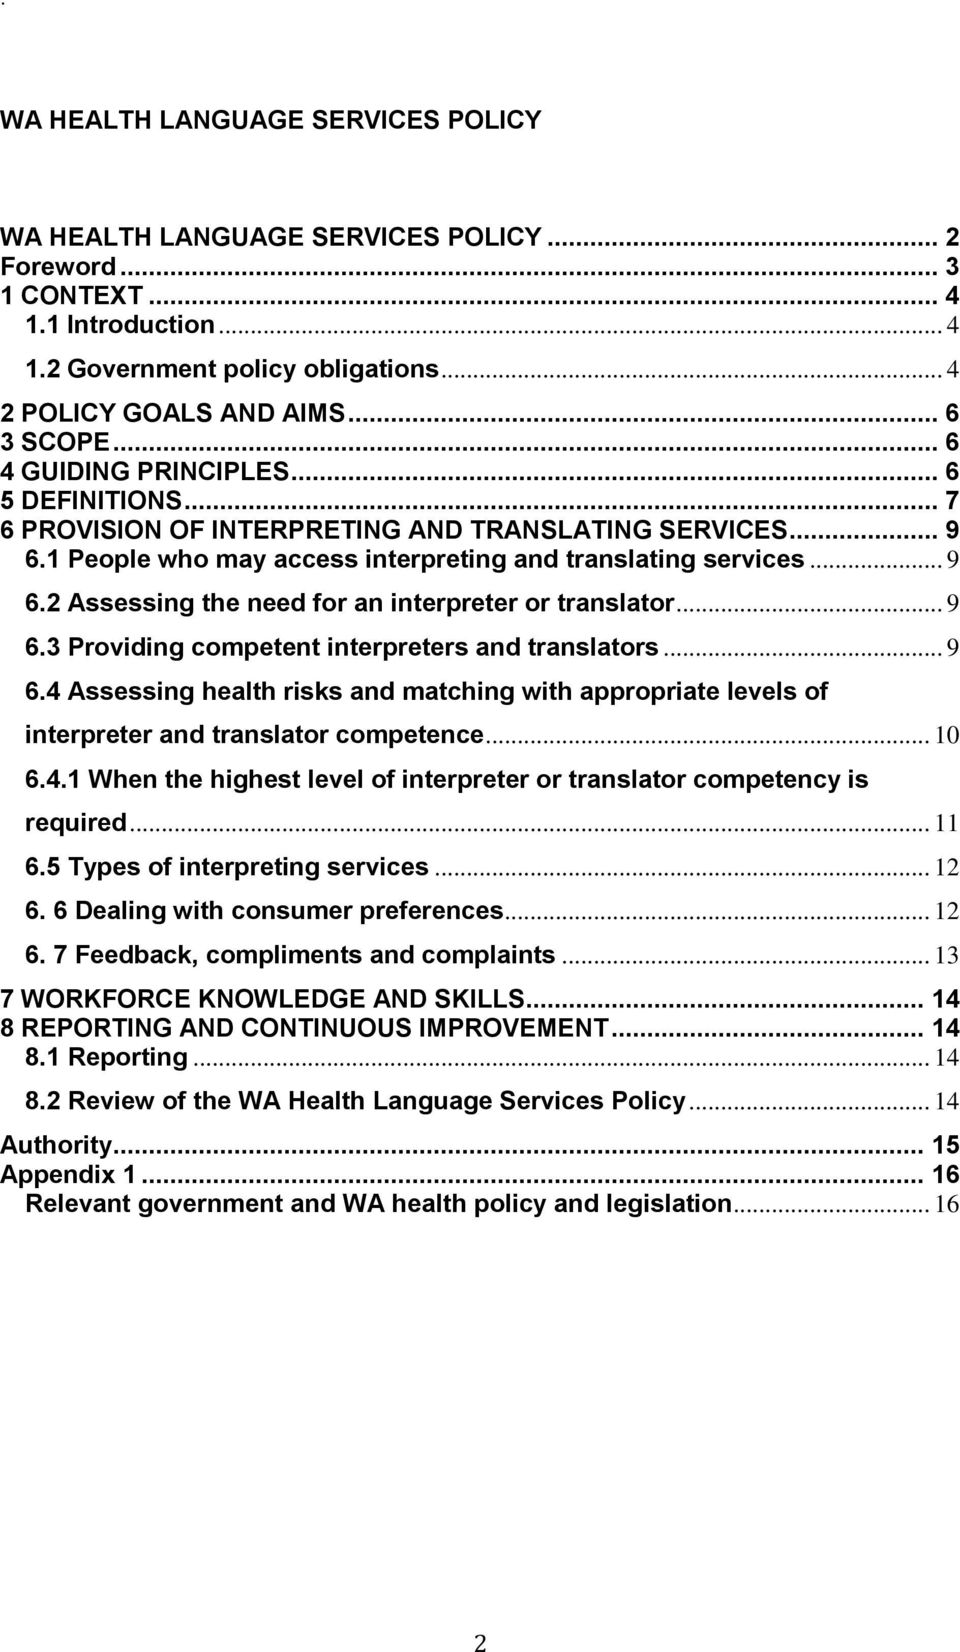 .. 9 6.3 Providing competent interpreters and translators... 9 6.4 Assessing health risks and matching with appropriate levels of interpreter and translator competence... 10 6.4.1 When the highest level of interpreter or translator competency is required.